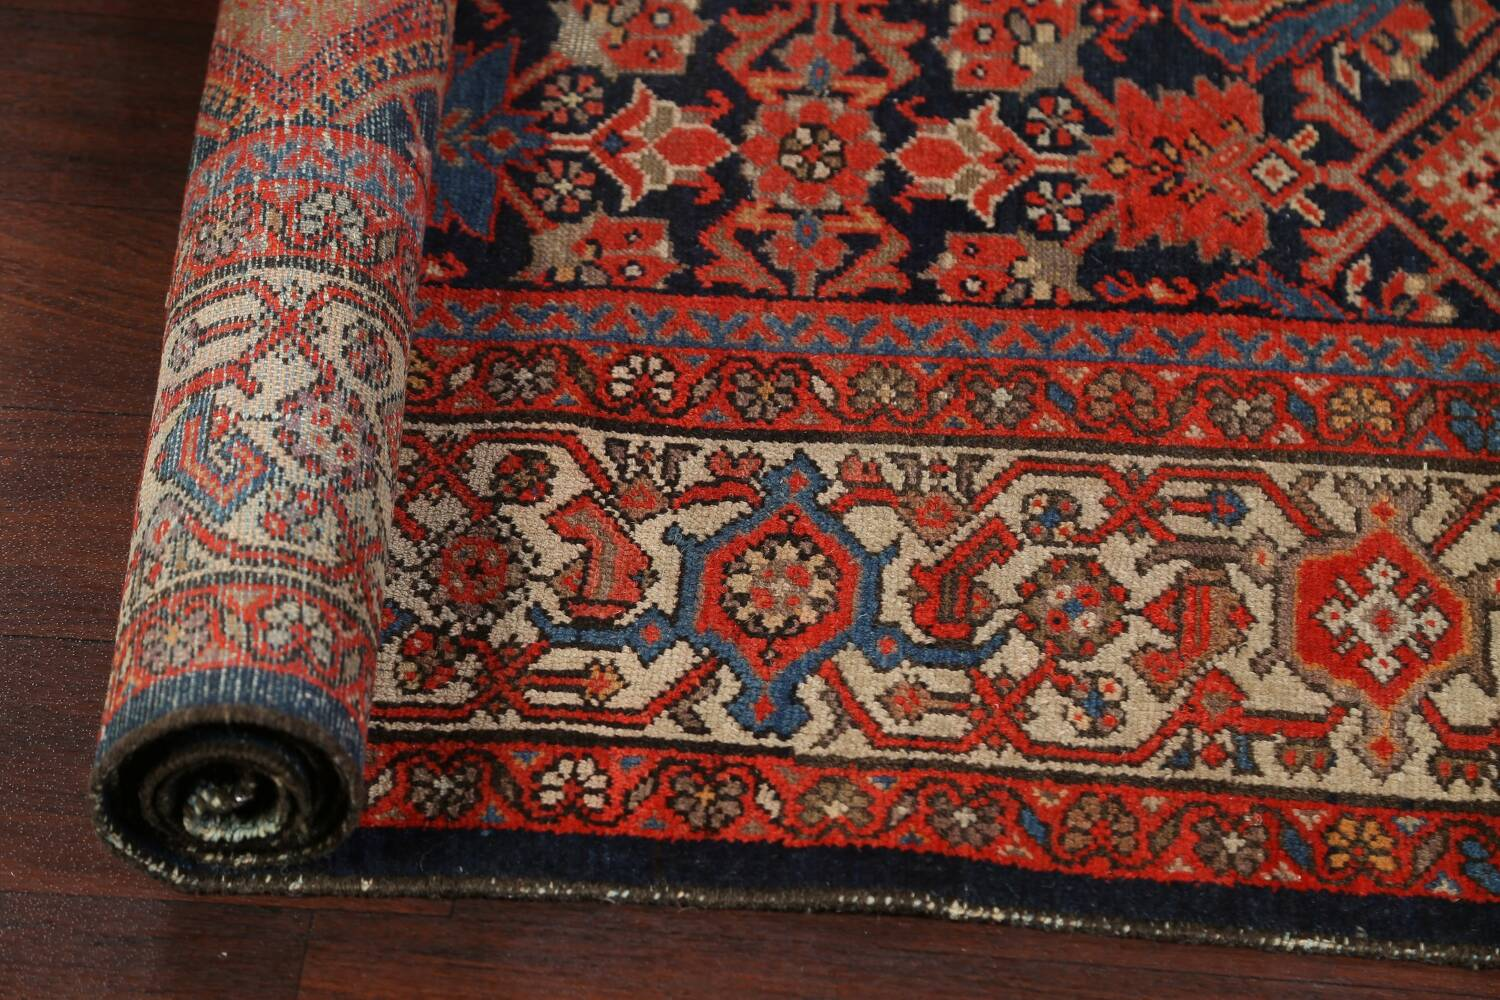 Pre-1900 Antique Vegetable Dye Malayer Persian Rug 5x12 image 13